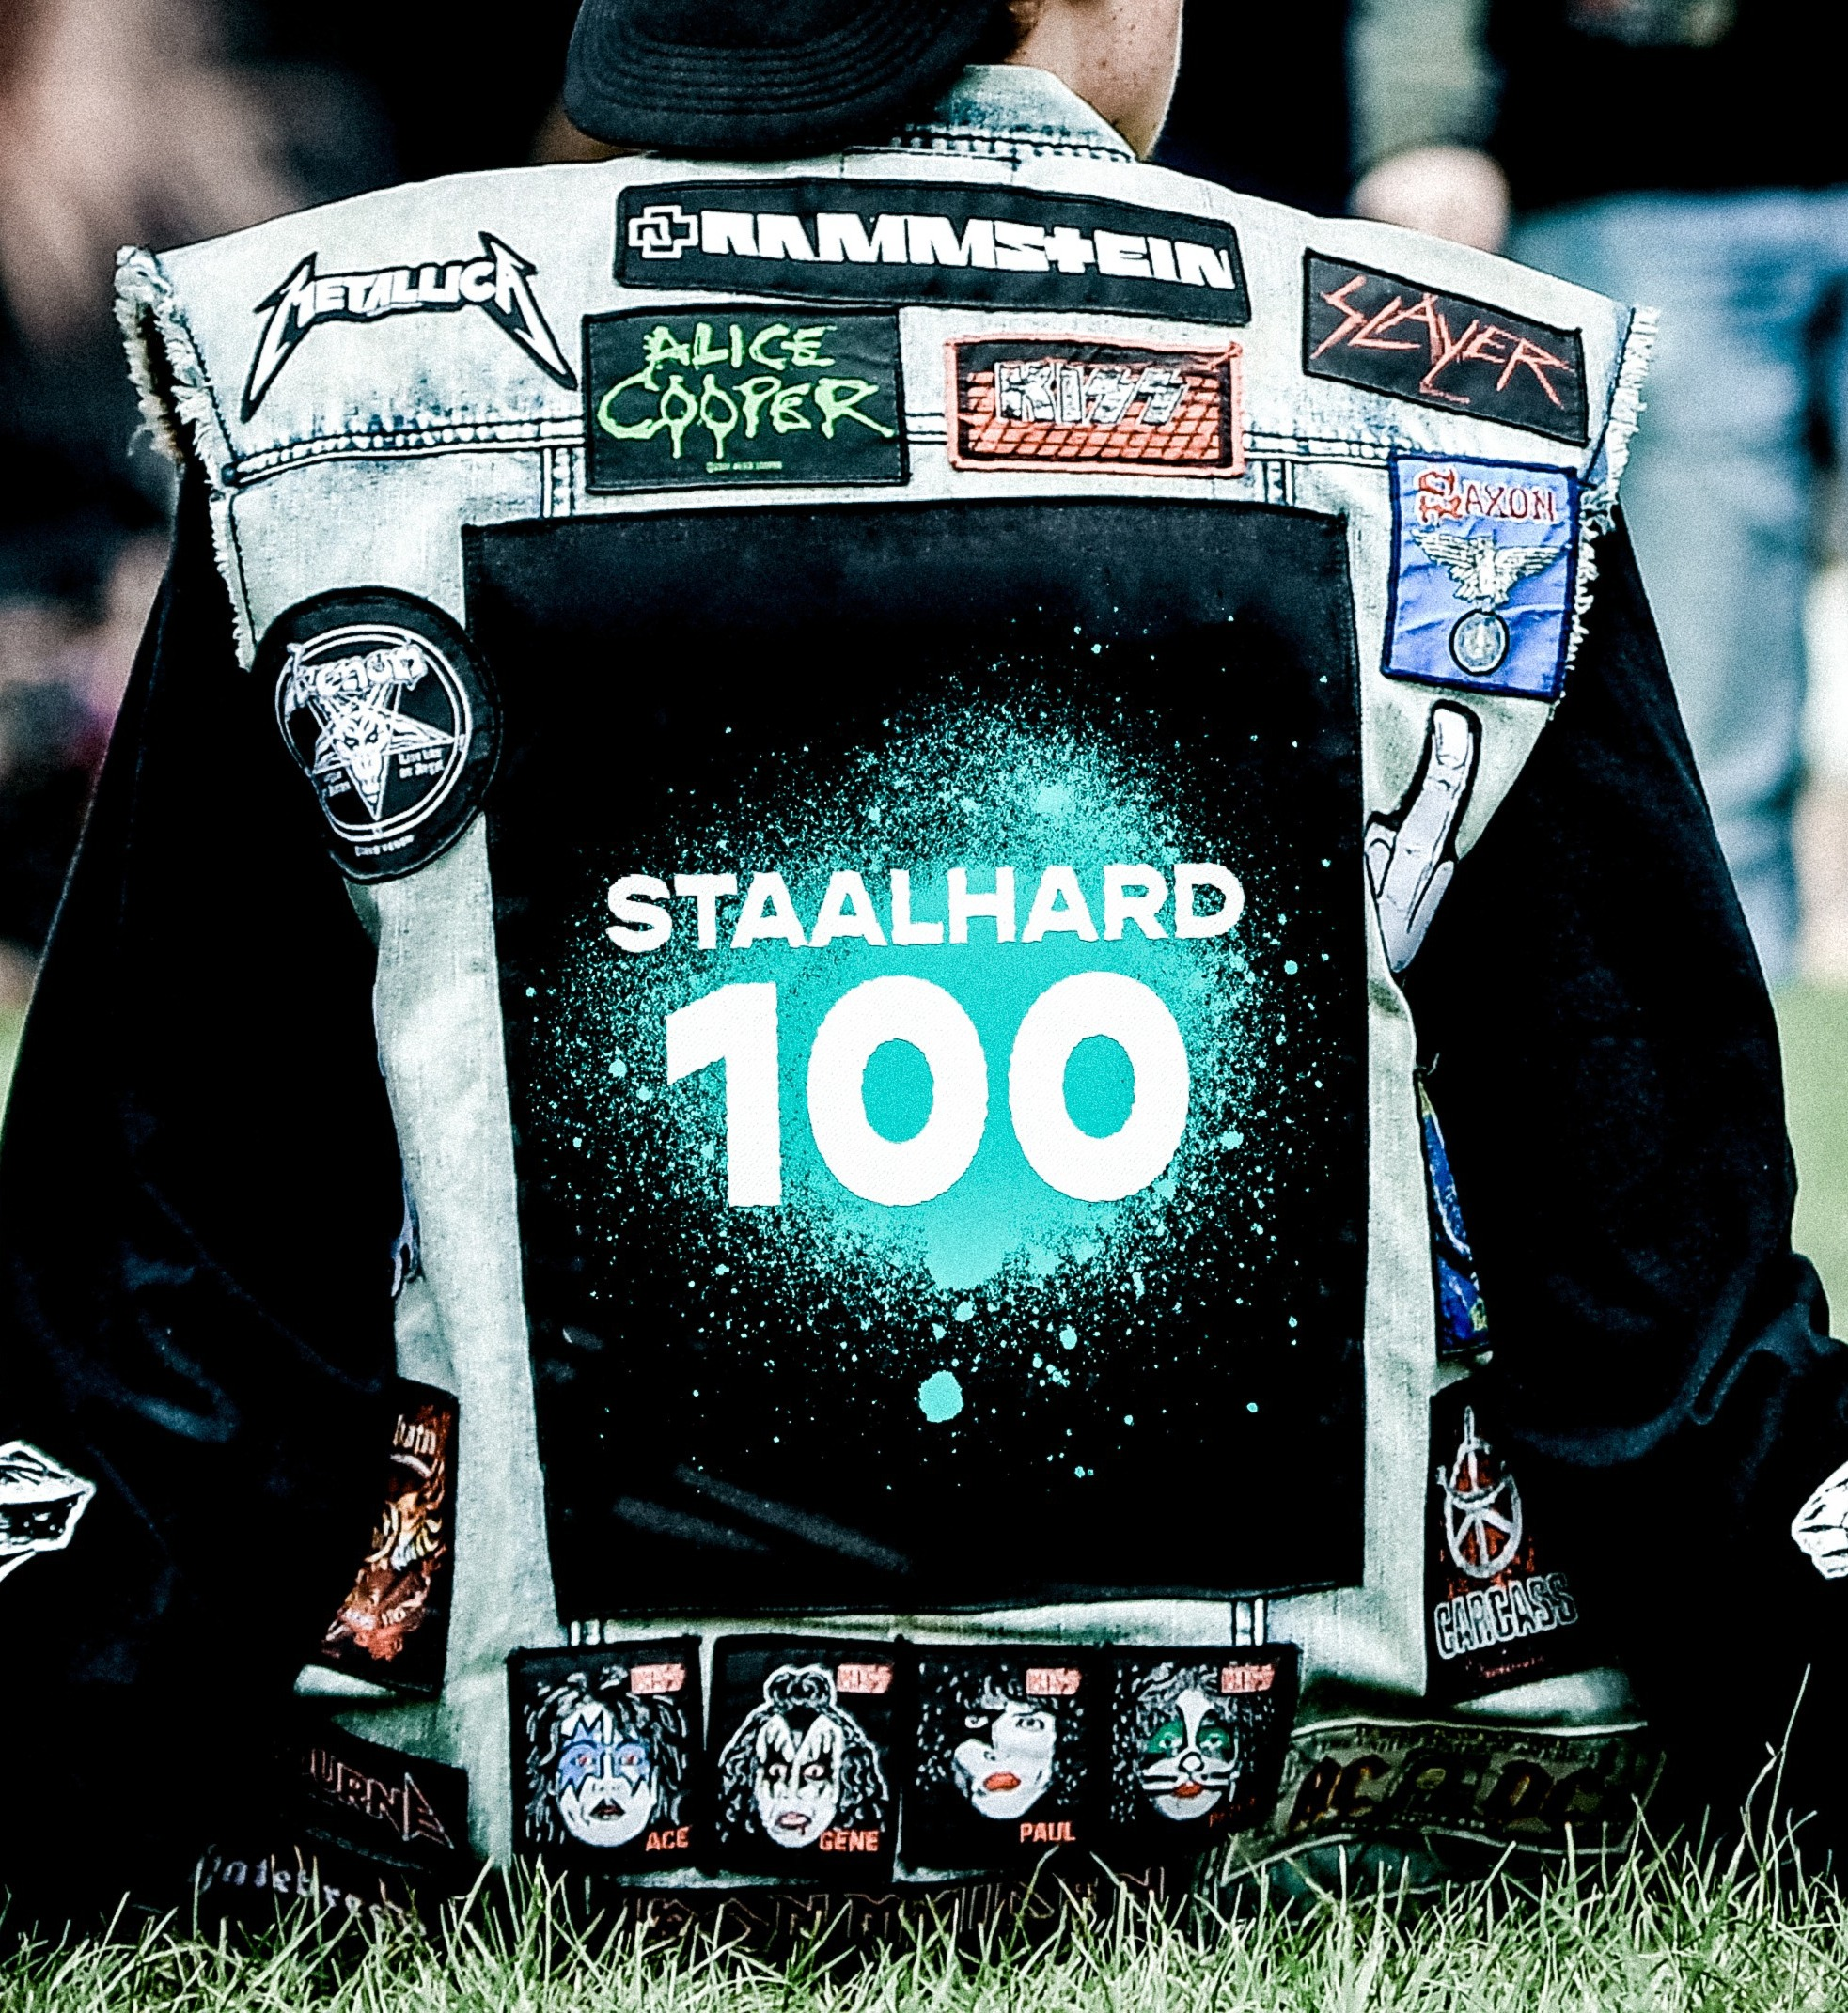 Staalhard100 site